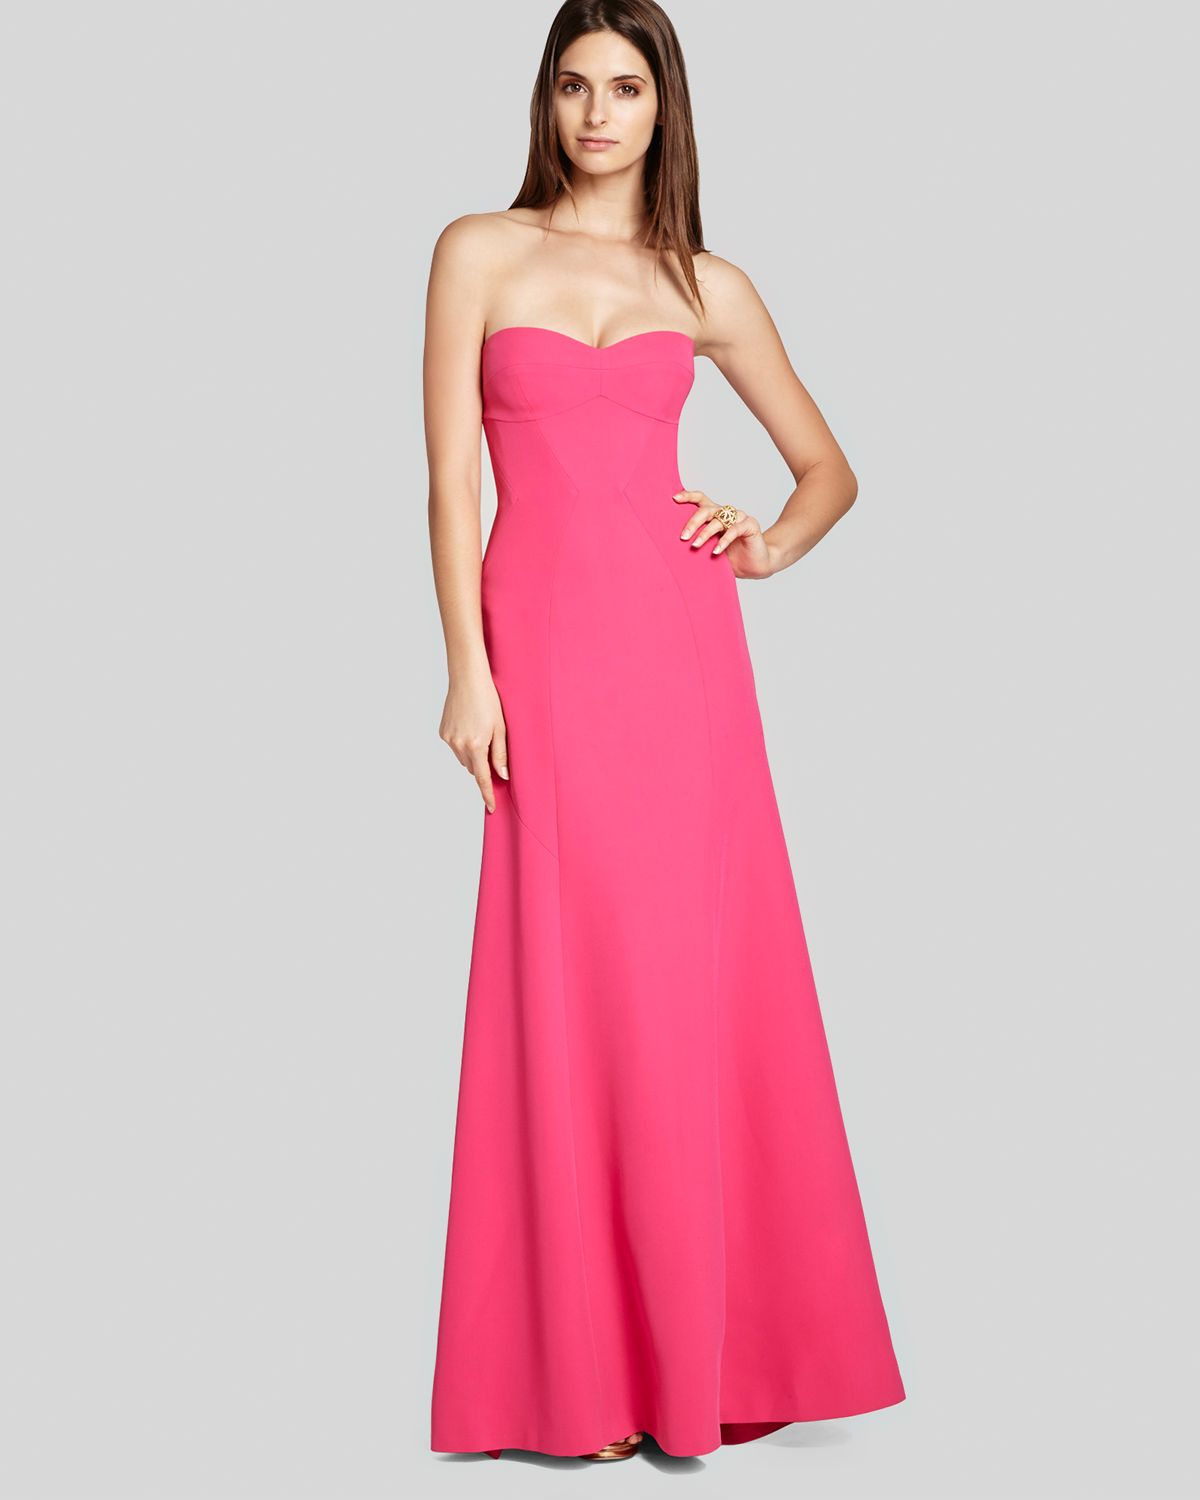 Bcbgmaxazria Bcbg Max Azria Gown Strapless Begonia furthermore Laptop Asus X441na Ga016t likewise Lg Q7 X210 Gris En Amigo Kit R9 moreover Lingerie Bikinis also Eileen West Slee ear Pink Eileen West Snow Queen Flannel Nightgown. on oscar de la renta outlet